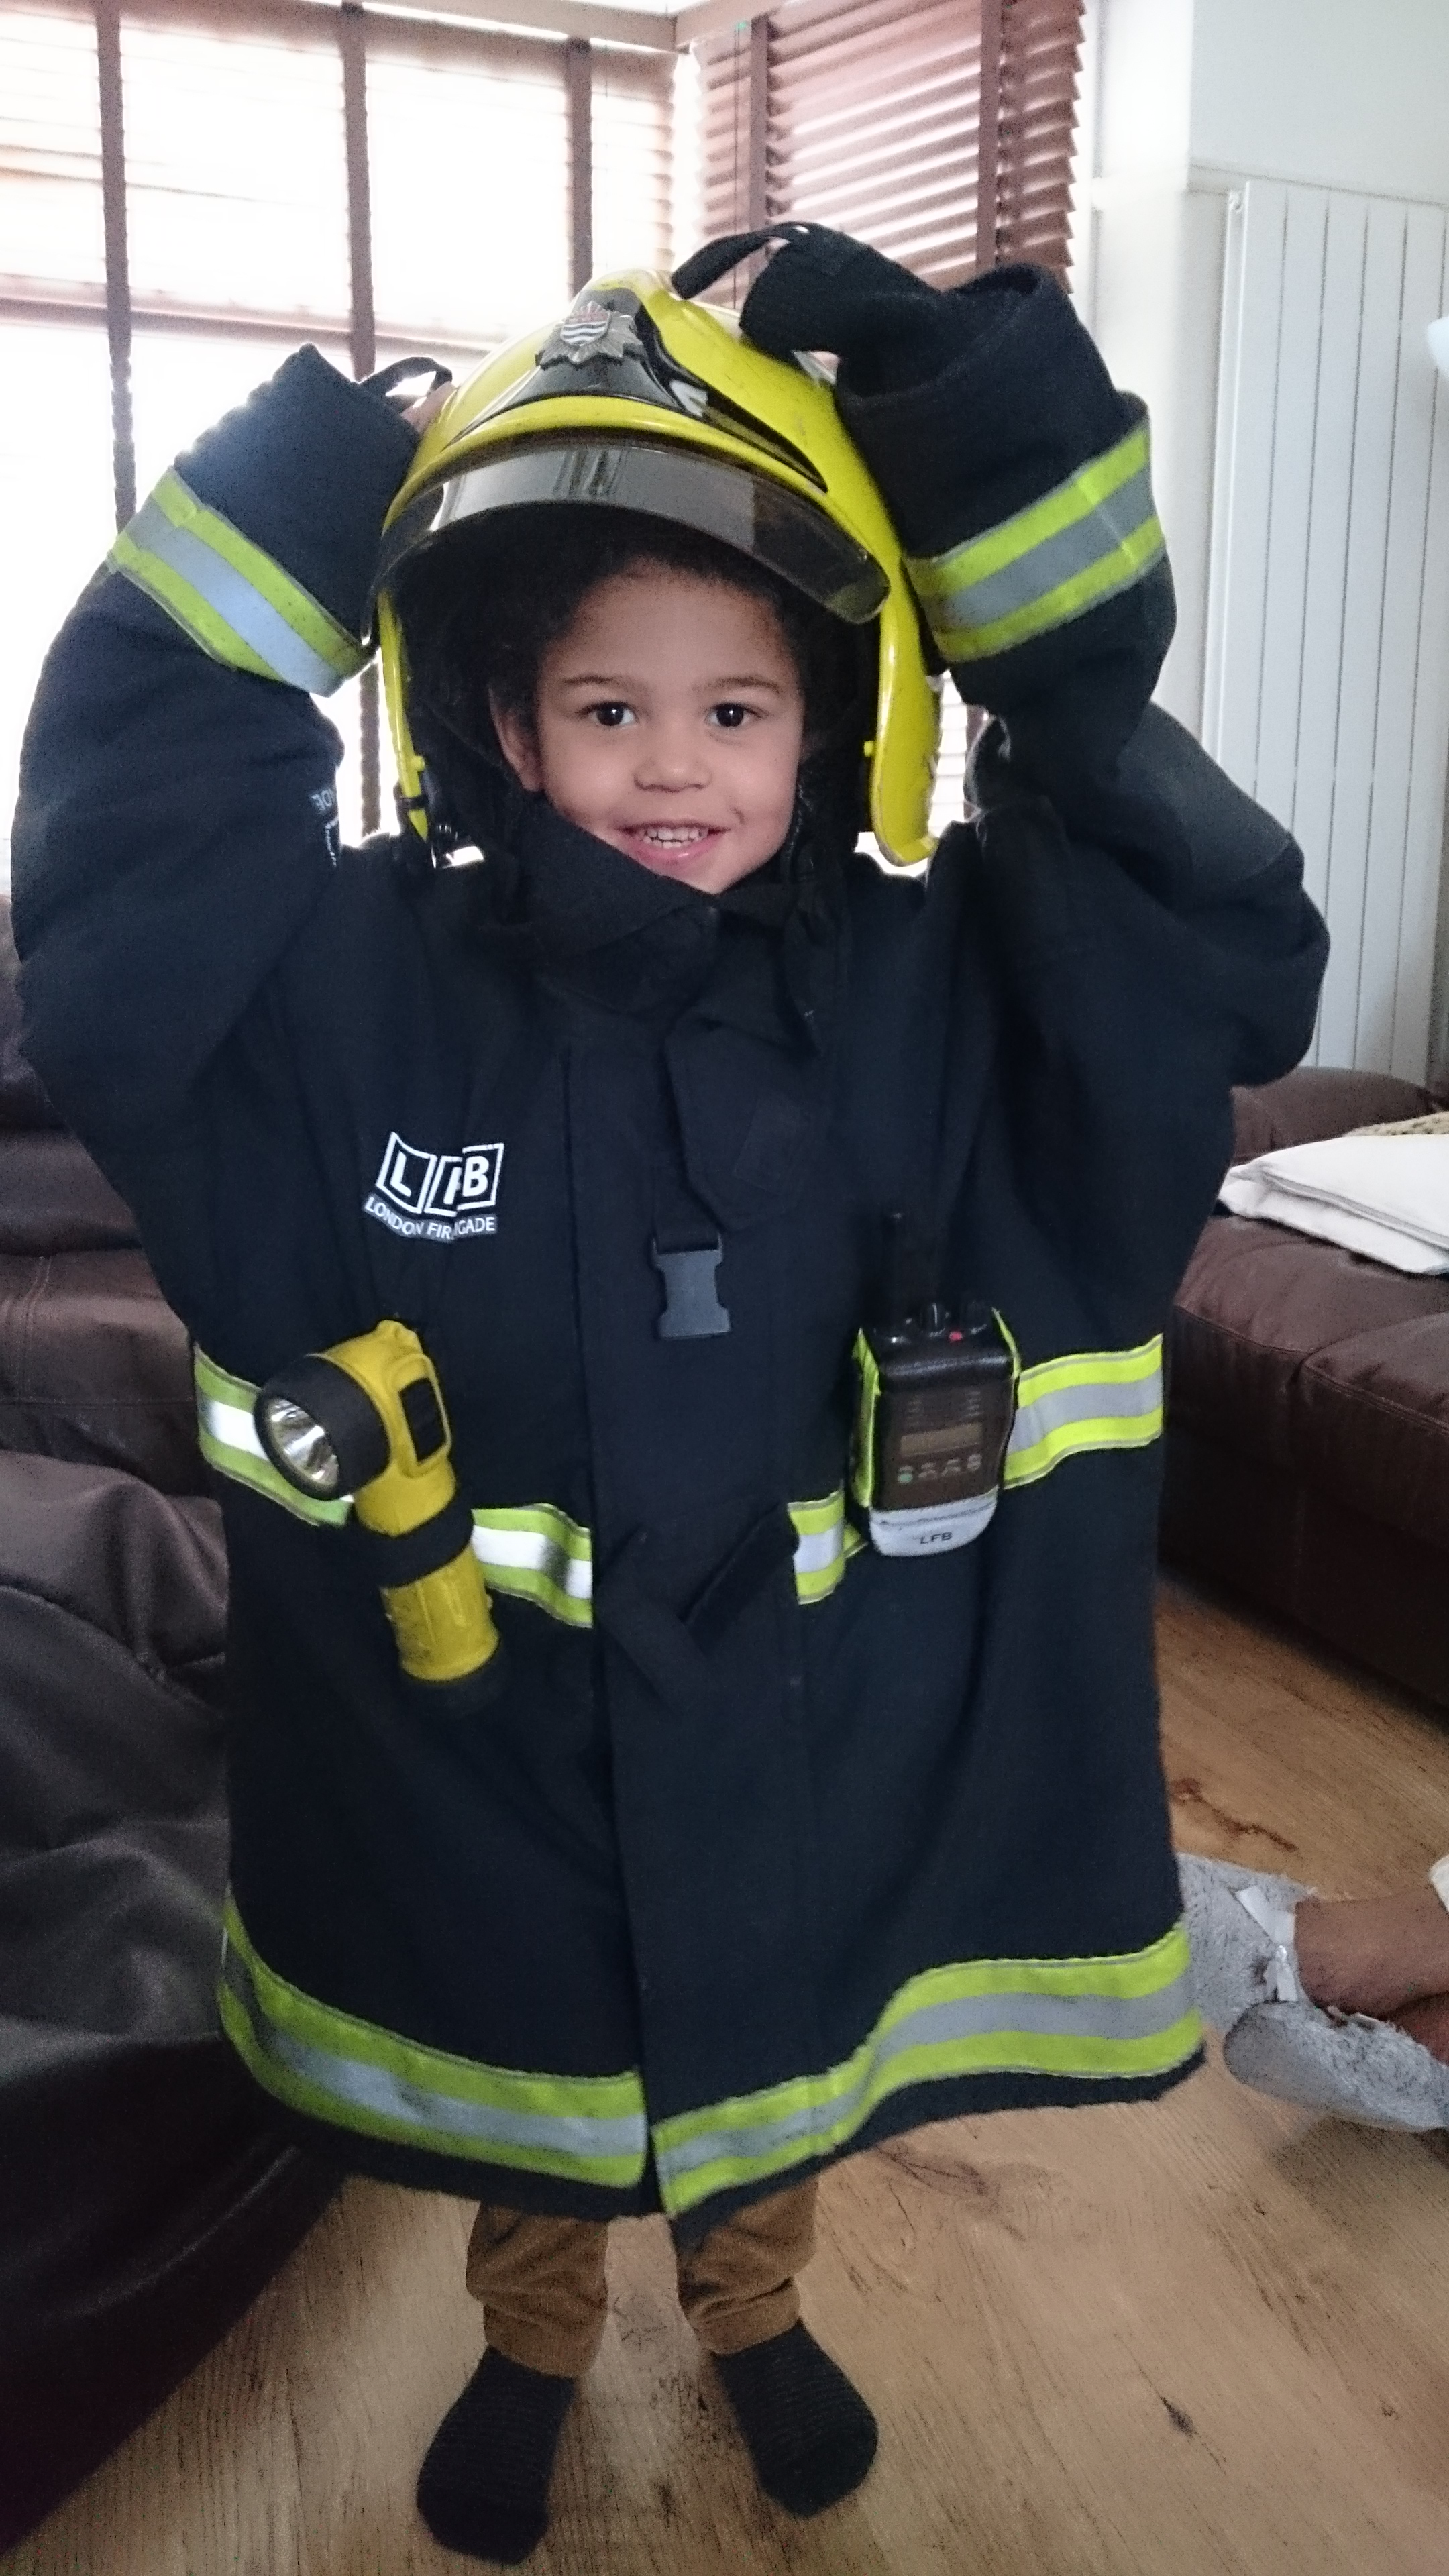 Child in fireman uniform